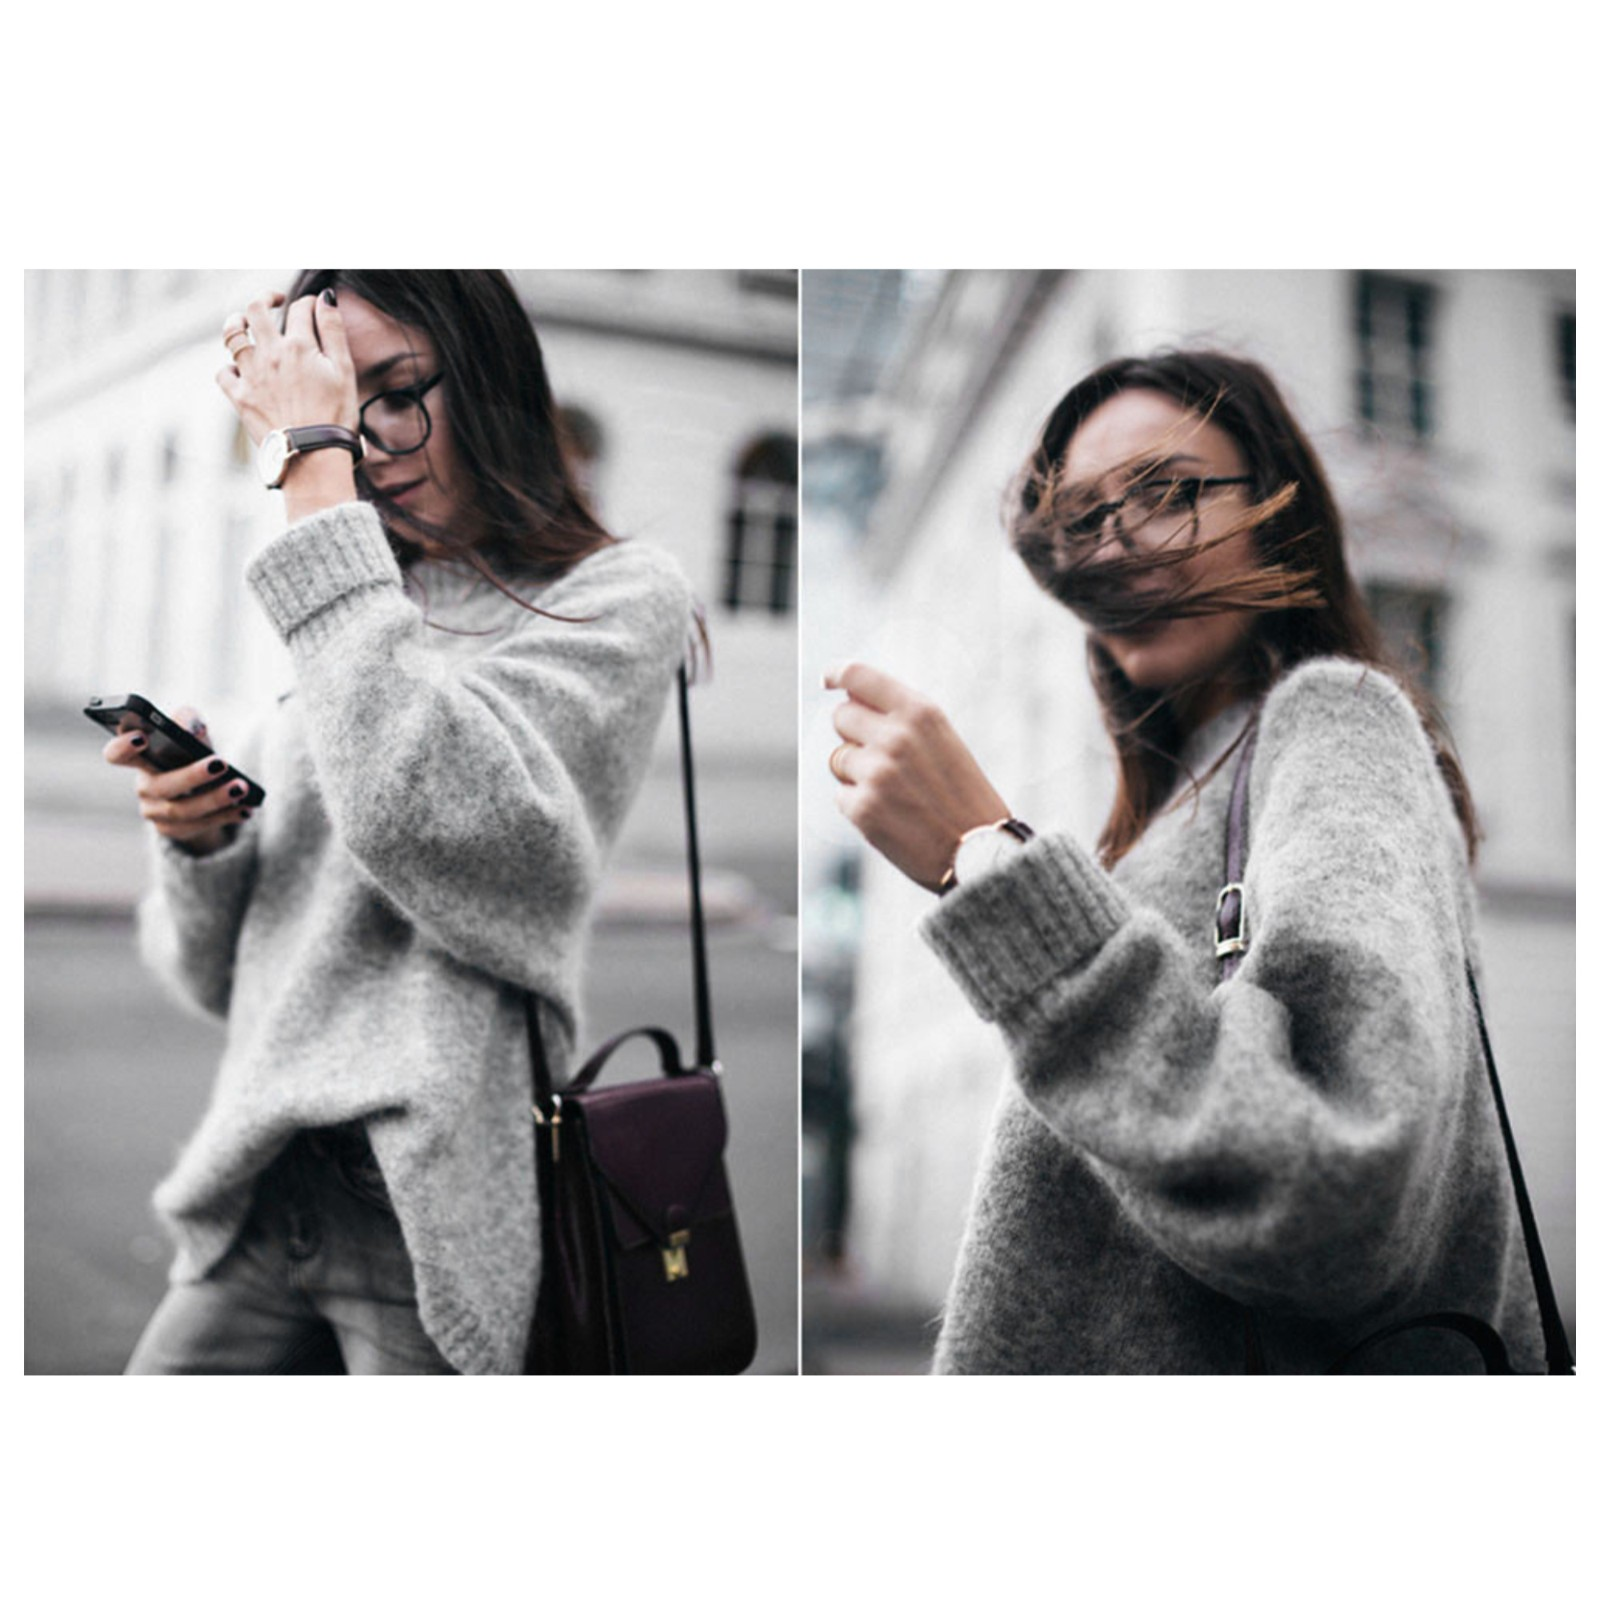 Korean Autumn and Winter Women Sweater Long Sleeve Turtleneck Knitted Pullover Gray Loose Solid Female Jumper Tops#GHC